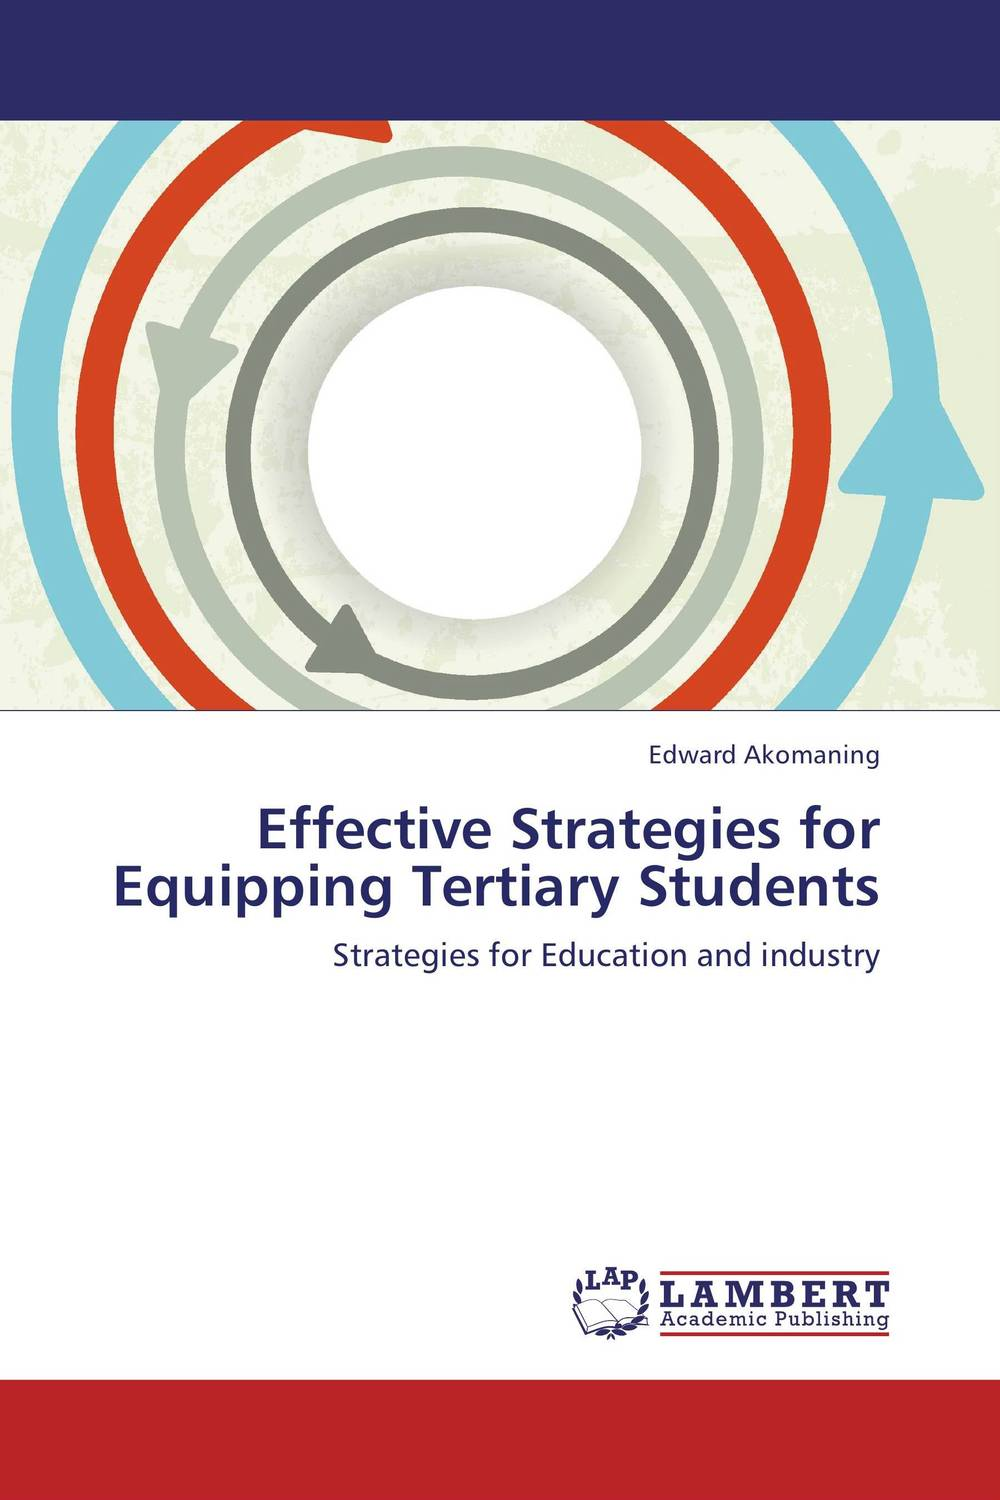 Effective Strategies for Equipping Tertiary Students  fritz ilongo workplace bullying as psychological violence in tertiary institutions